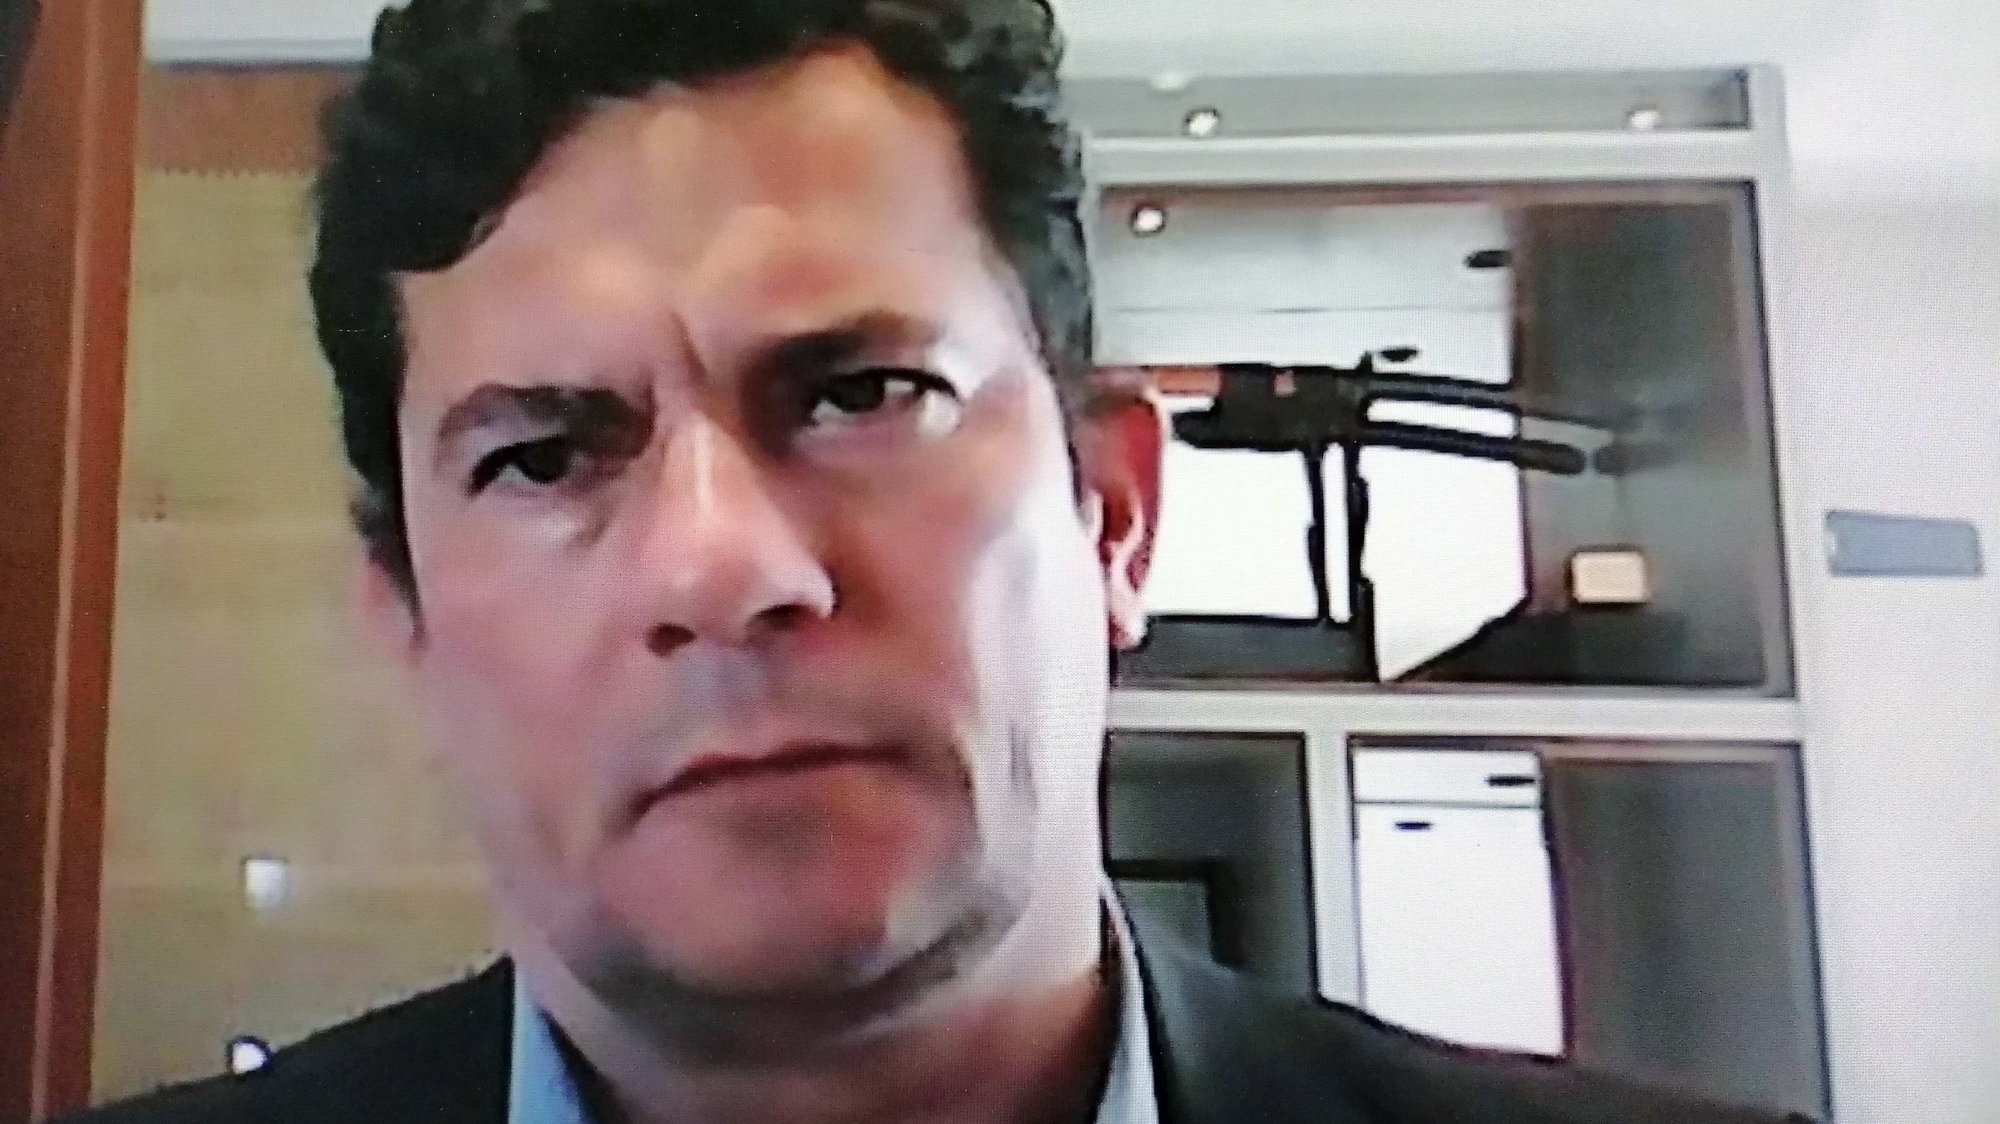 """epa08536687 Screenshot showing Sergio Moro, former Minister of Justice and Public Security of Brazil, during a virtual interview with Efe, in Sao Paulo, Brazil, 08 July 2020 (issued 09 July). """"I have doubts to what extent the autonomy of control bodies is guaranteed"""" for fighting corruption in the government of Jair Bolsonaro, Sergio Moro, famous for his fight against impunity in Brazil and powerful Minister of Justice and Justice, said in an interview. Public Security until April. Moro, 47, was judge of the """"Lava Jato"""" anti-corruption mega-operation, which since 2014 took dozens of businessmen and politicians to prison, including former President Luiz Inacio Lula da Silva - who has been released since November 2019 after being imprisoned for one year and seven months.  EPA/Ceciclia Malavoglia BEST QUALITY AVAILABLE"""